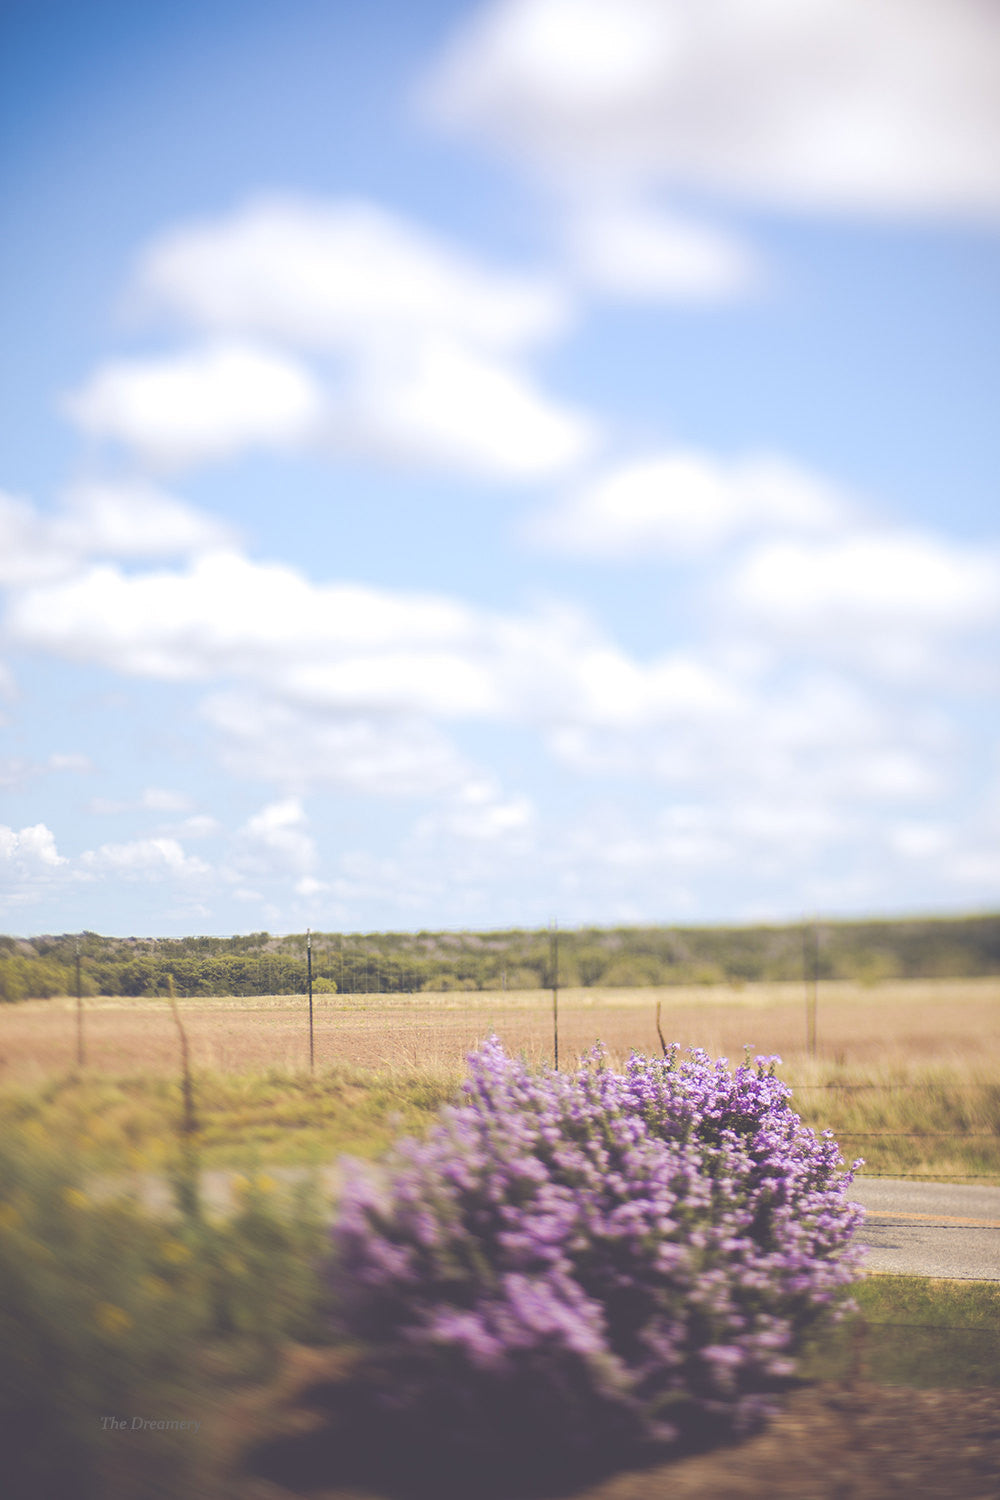 texas photography, texas art, texas hillcountry, dreamy photography, big sky country, texas landscape photography, texas decor, southwest